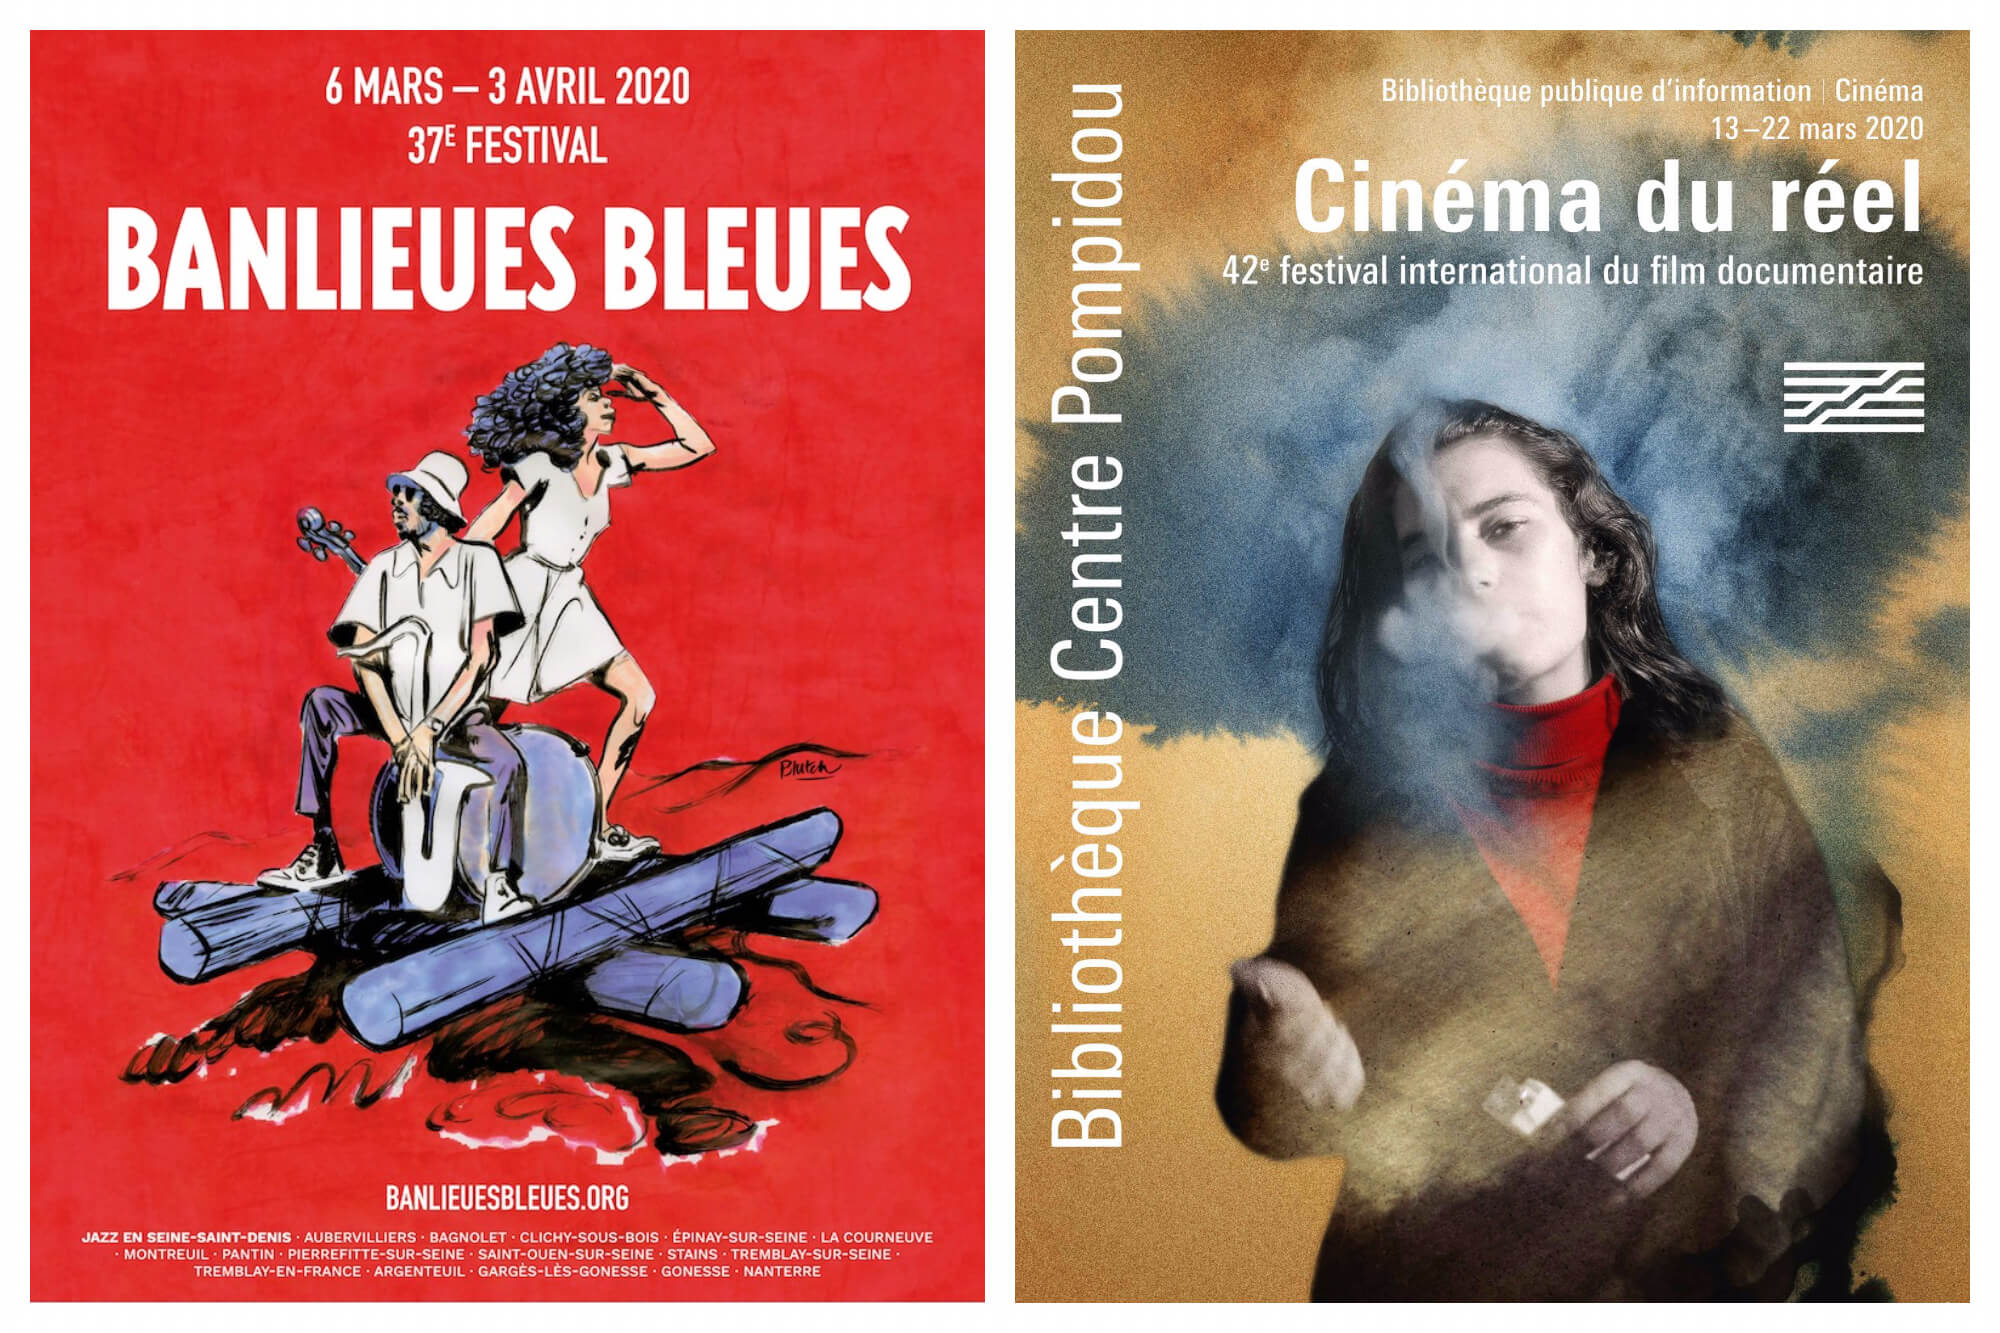 Left, poster with red background and two people exploring in the woods for Banlieues Bleues music festival in Paris in March. Right, poster of a girl smoking for Cinema festival in Paris this month.